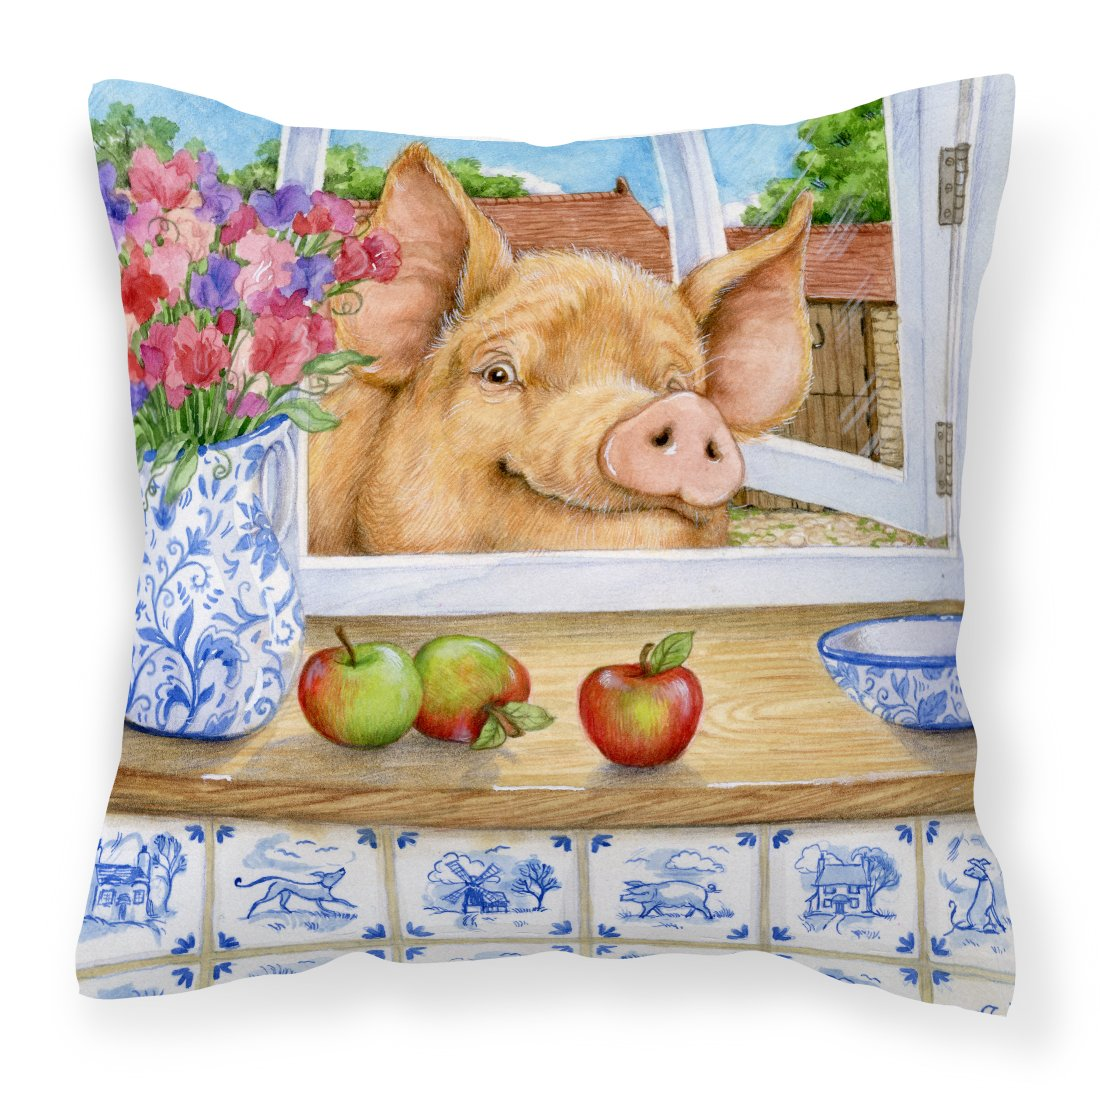 Pig trying to reach the Apple in the Window Canvas Decorative Pillow by Caroline's Treasures